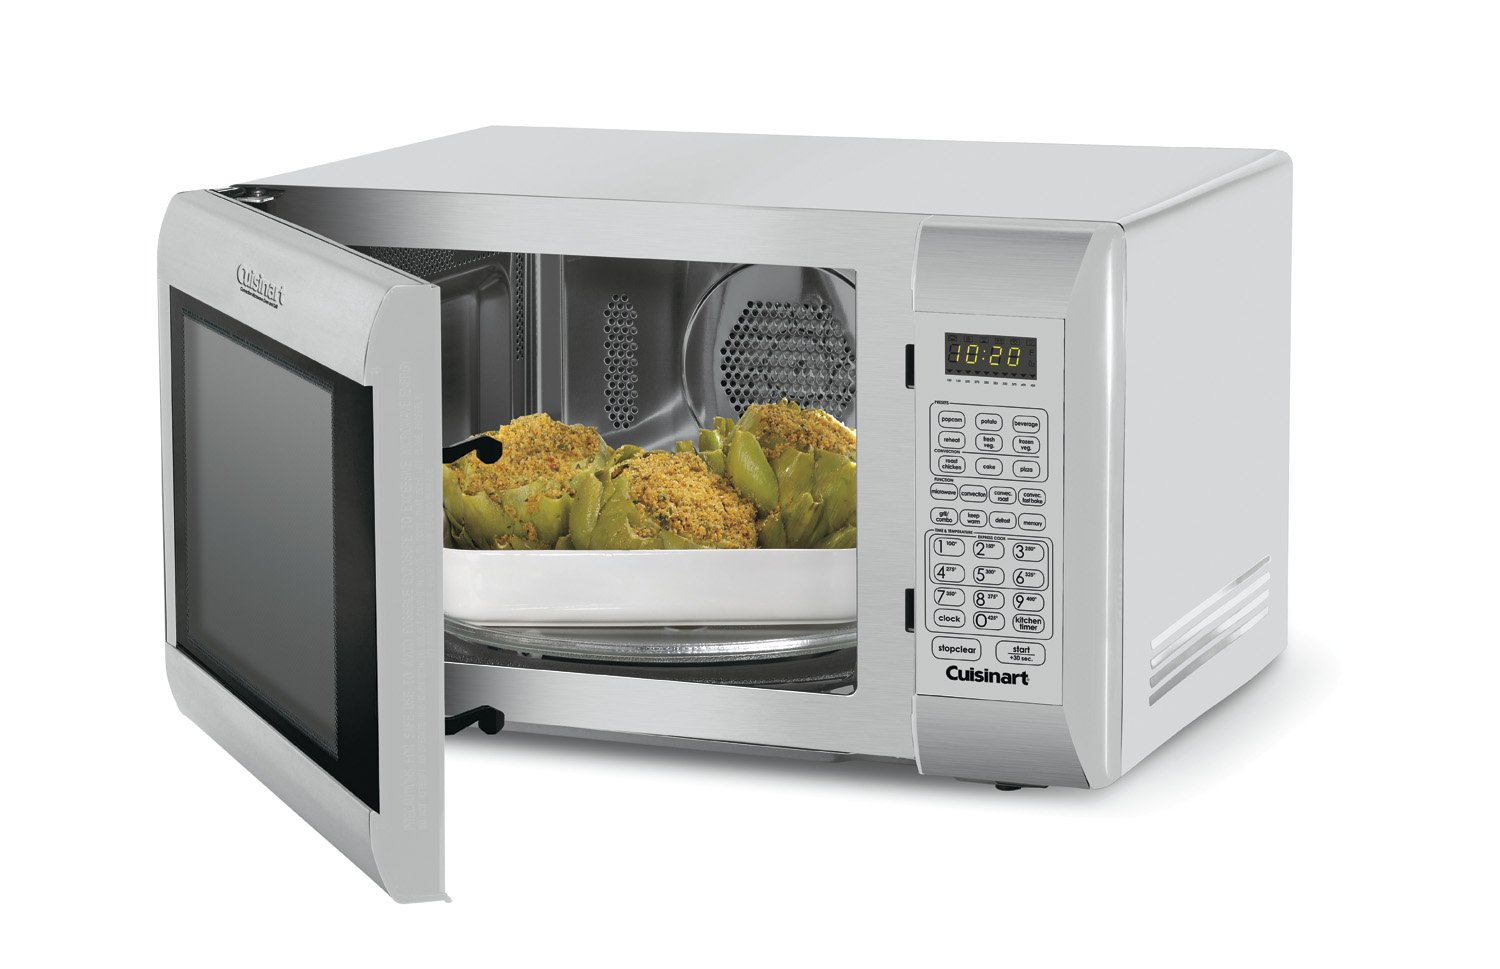 Countertop Convection Oven With Microwave : ... CMW-200 1-1/5-Cubic-Foot Convection Microwave Oven with Grill Features